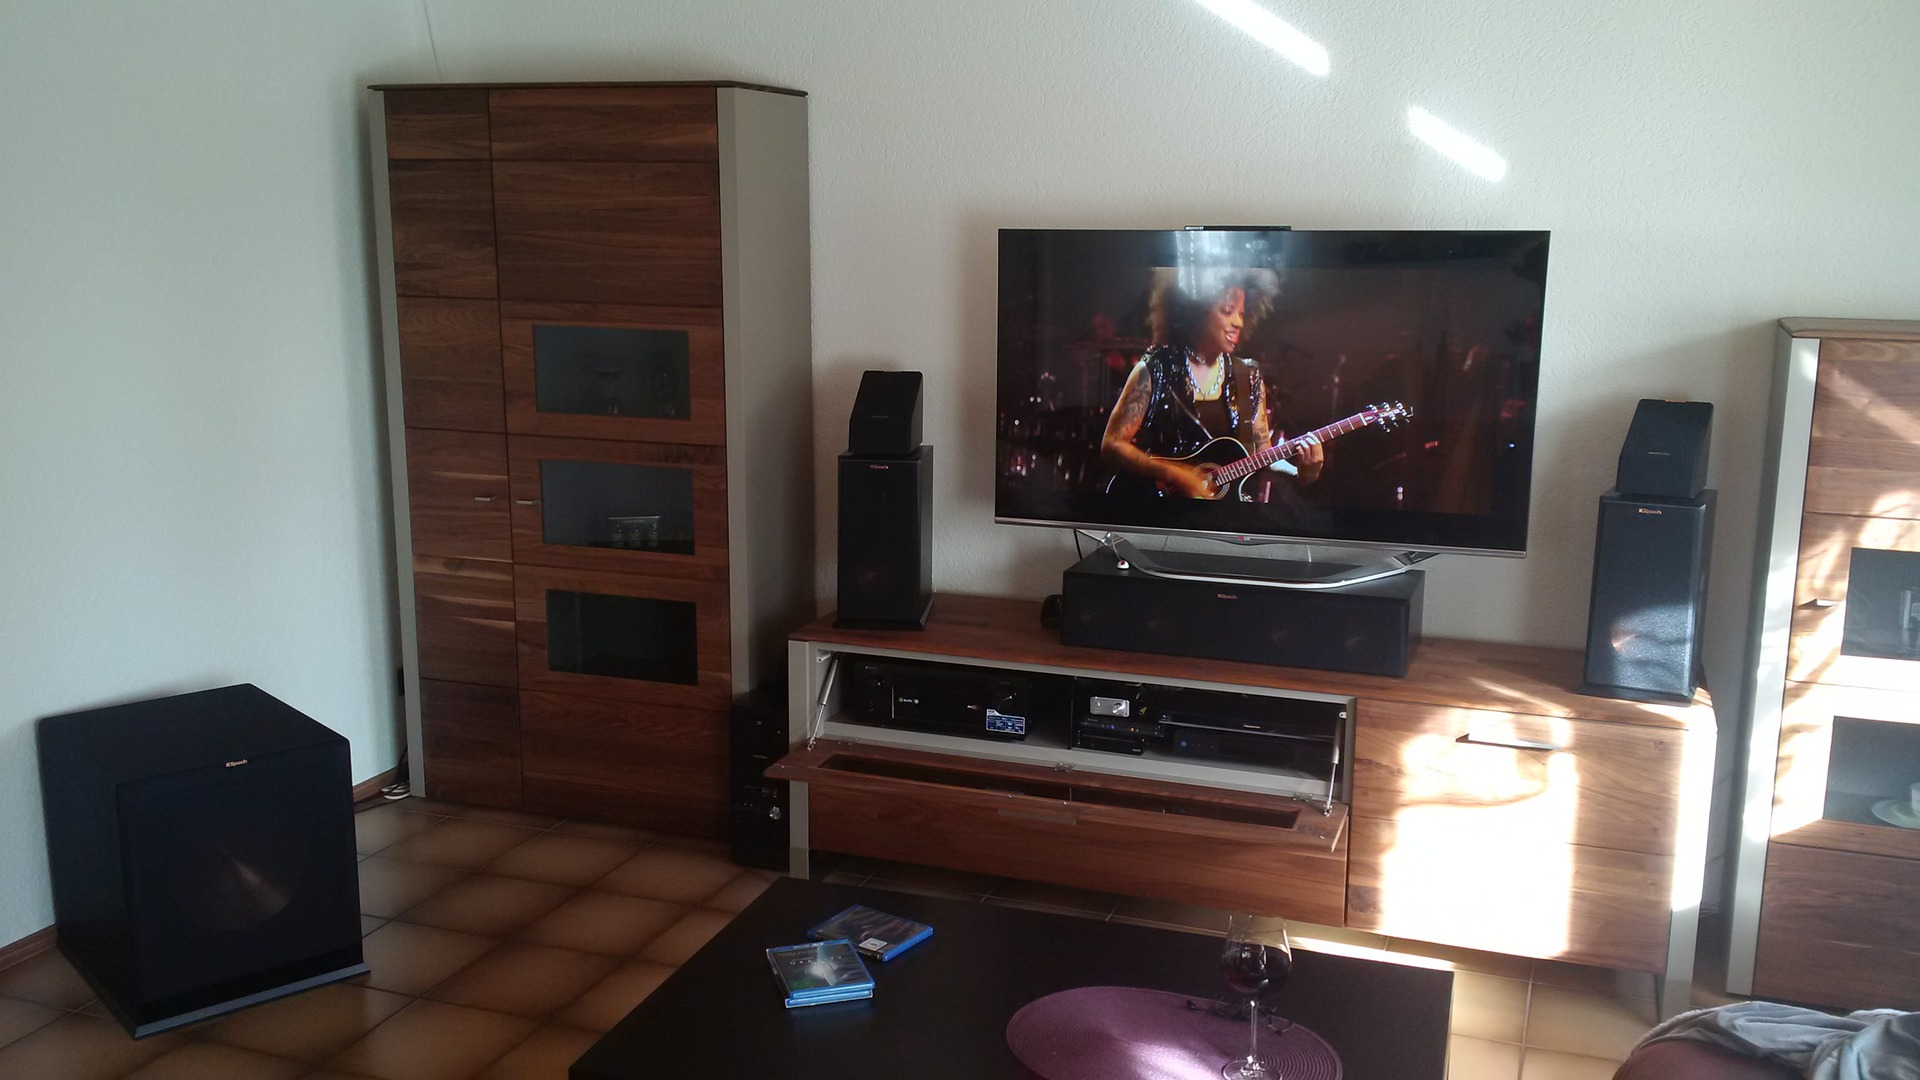 klipsch boxen mit meinen tv hifi schrank boxen heimkino klipsch lautsprecher surround. Black Bedroom Furniture Sets. Home Design Ideas